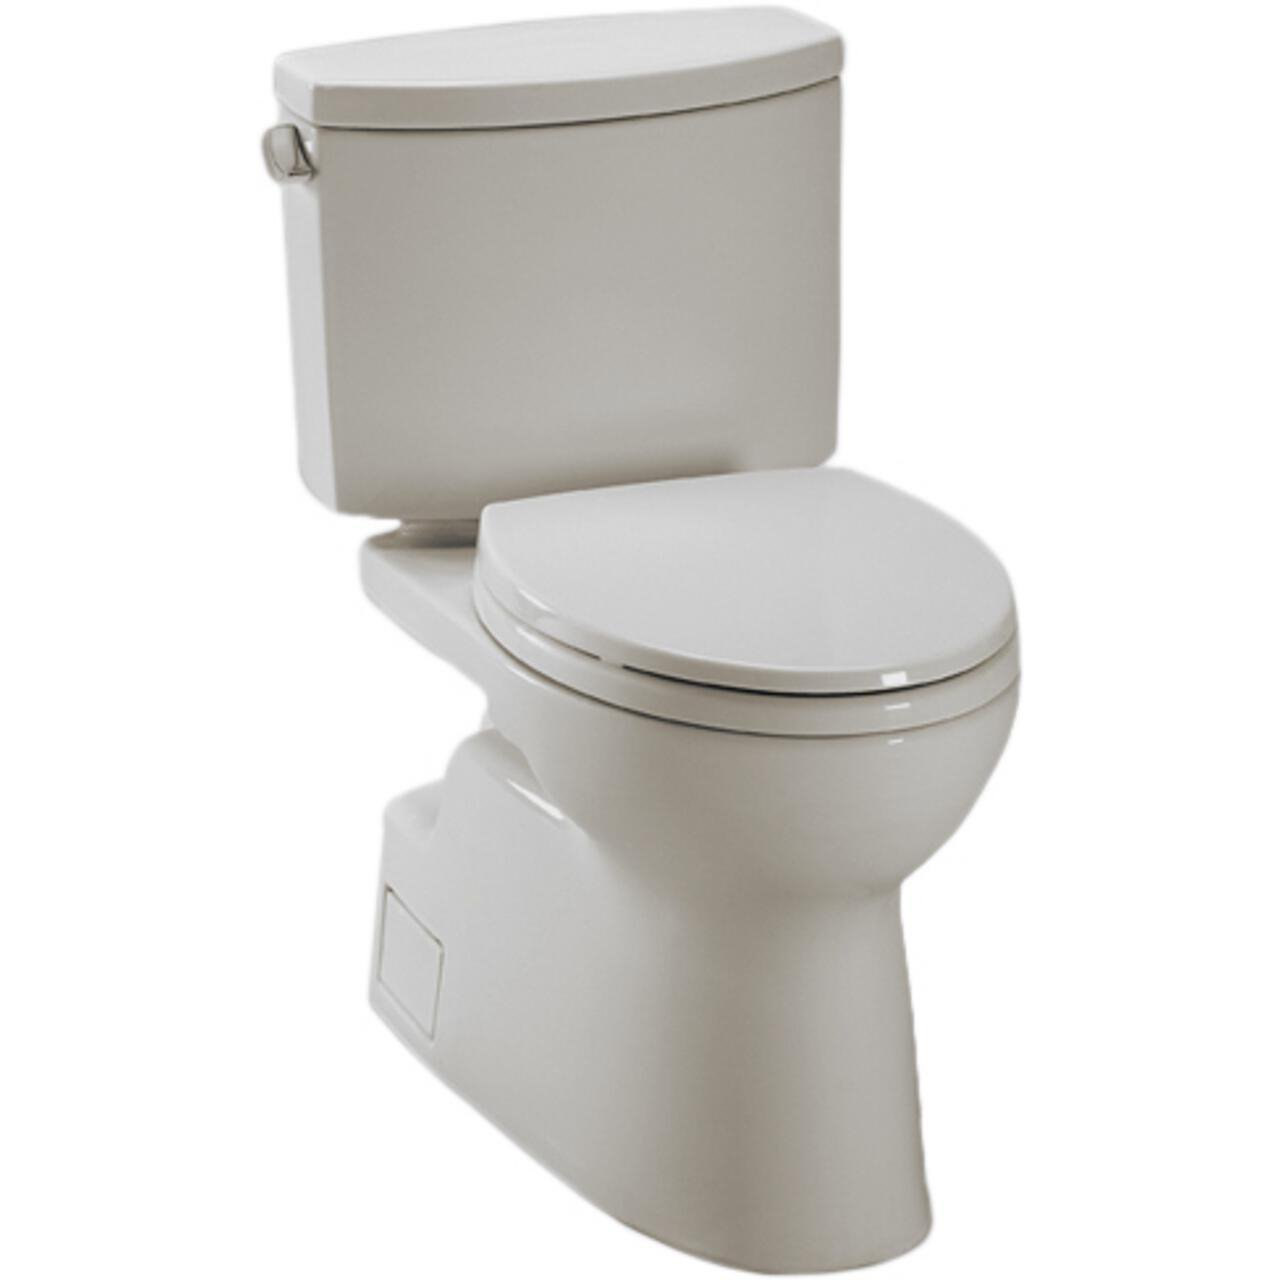 Toto CST474CEFGNo.11 Vespin II Two-Piece High-Efficiency Toilet ...